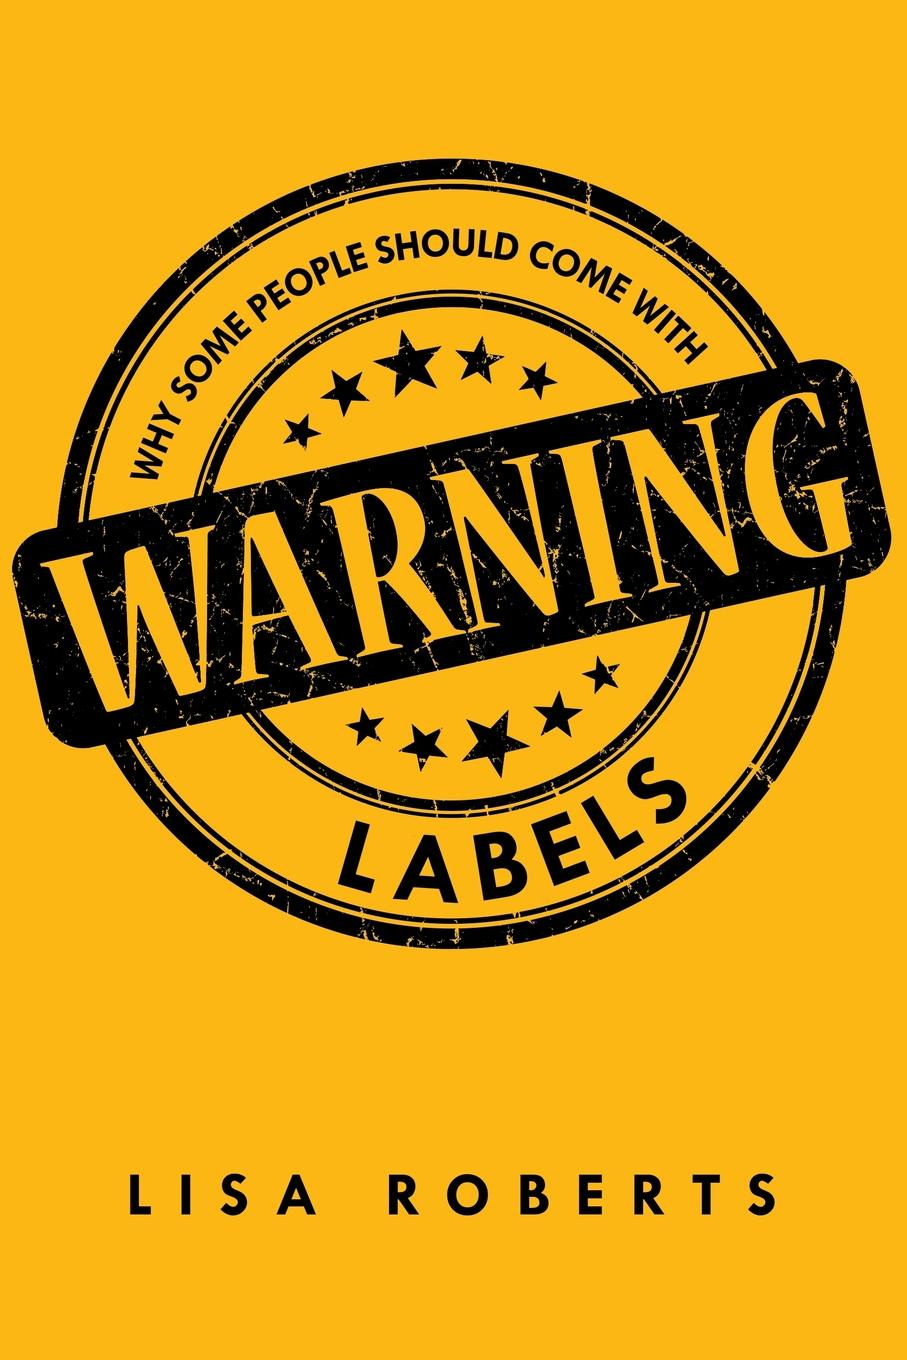 Lisa Roberts Why Some People Should Come With Warning Labels jody thompson why managing sucks and how to fix it a results only guide to taking control of work not people